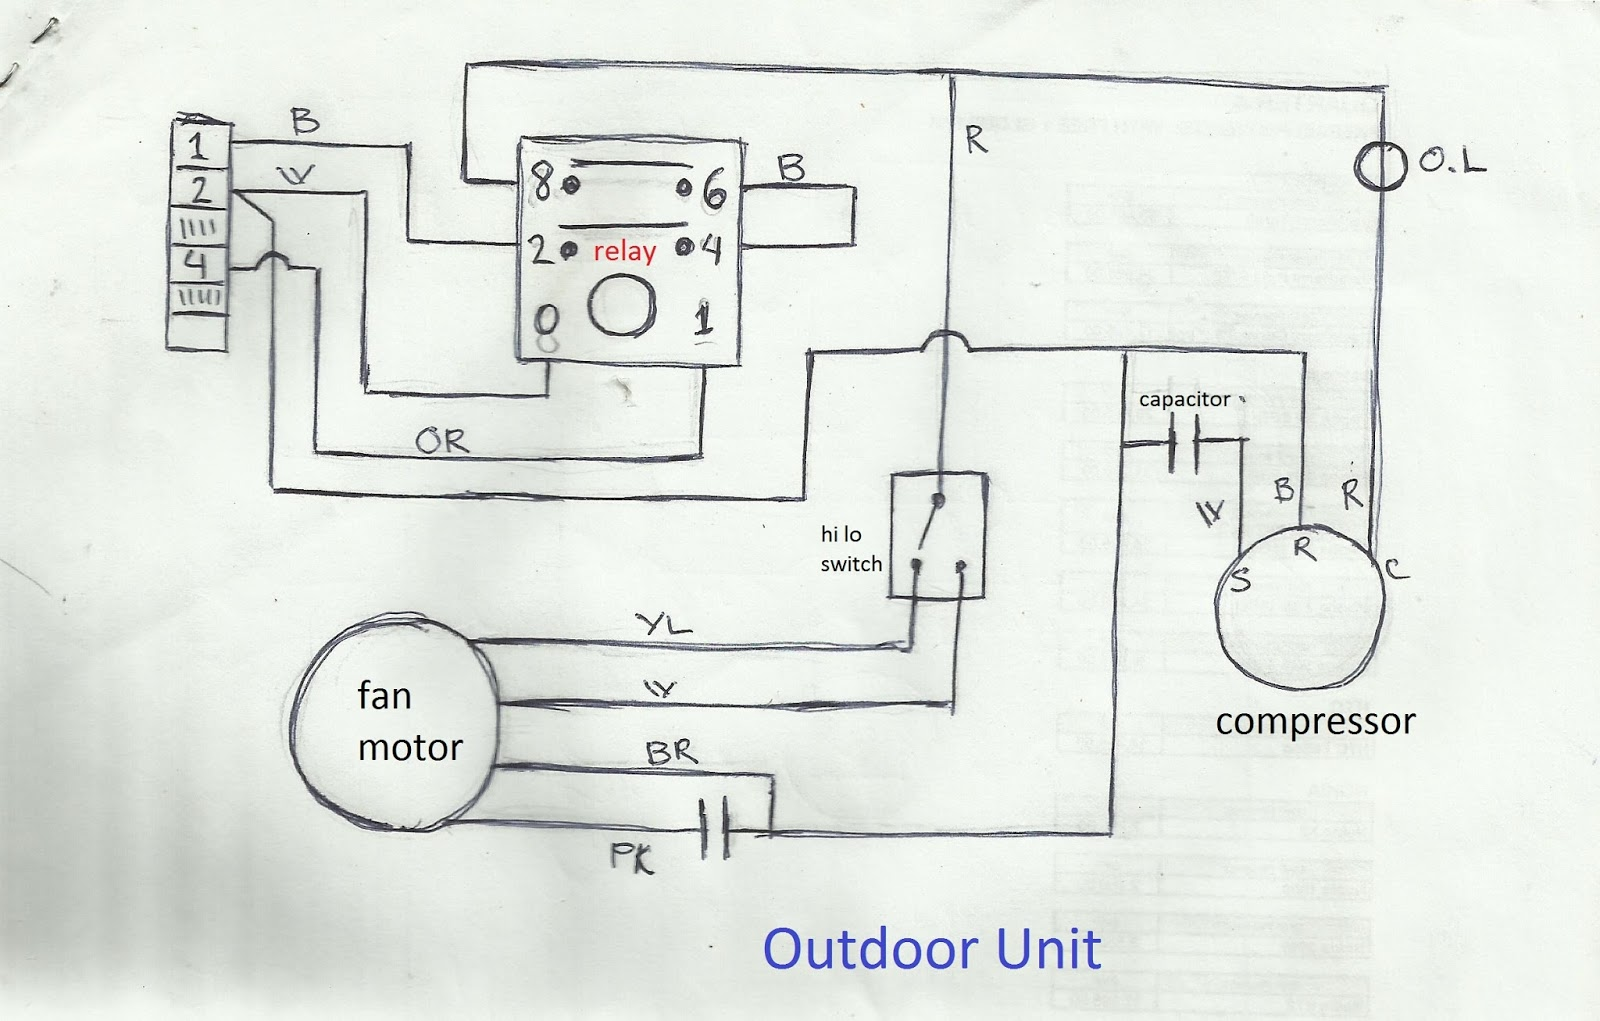 Window Air Conditioner Fuse Wire Bookmark About Wiring Diagram For Compressor Further Box Together With Thermostat Rh Windowairconditionertobunzu Blogspot Com Where Does The Handler Go In